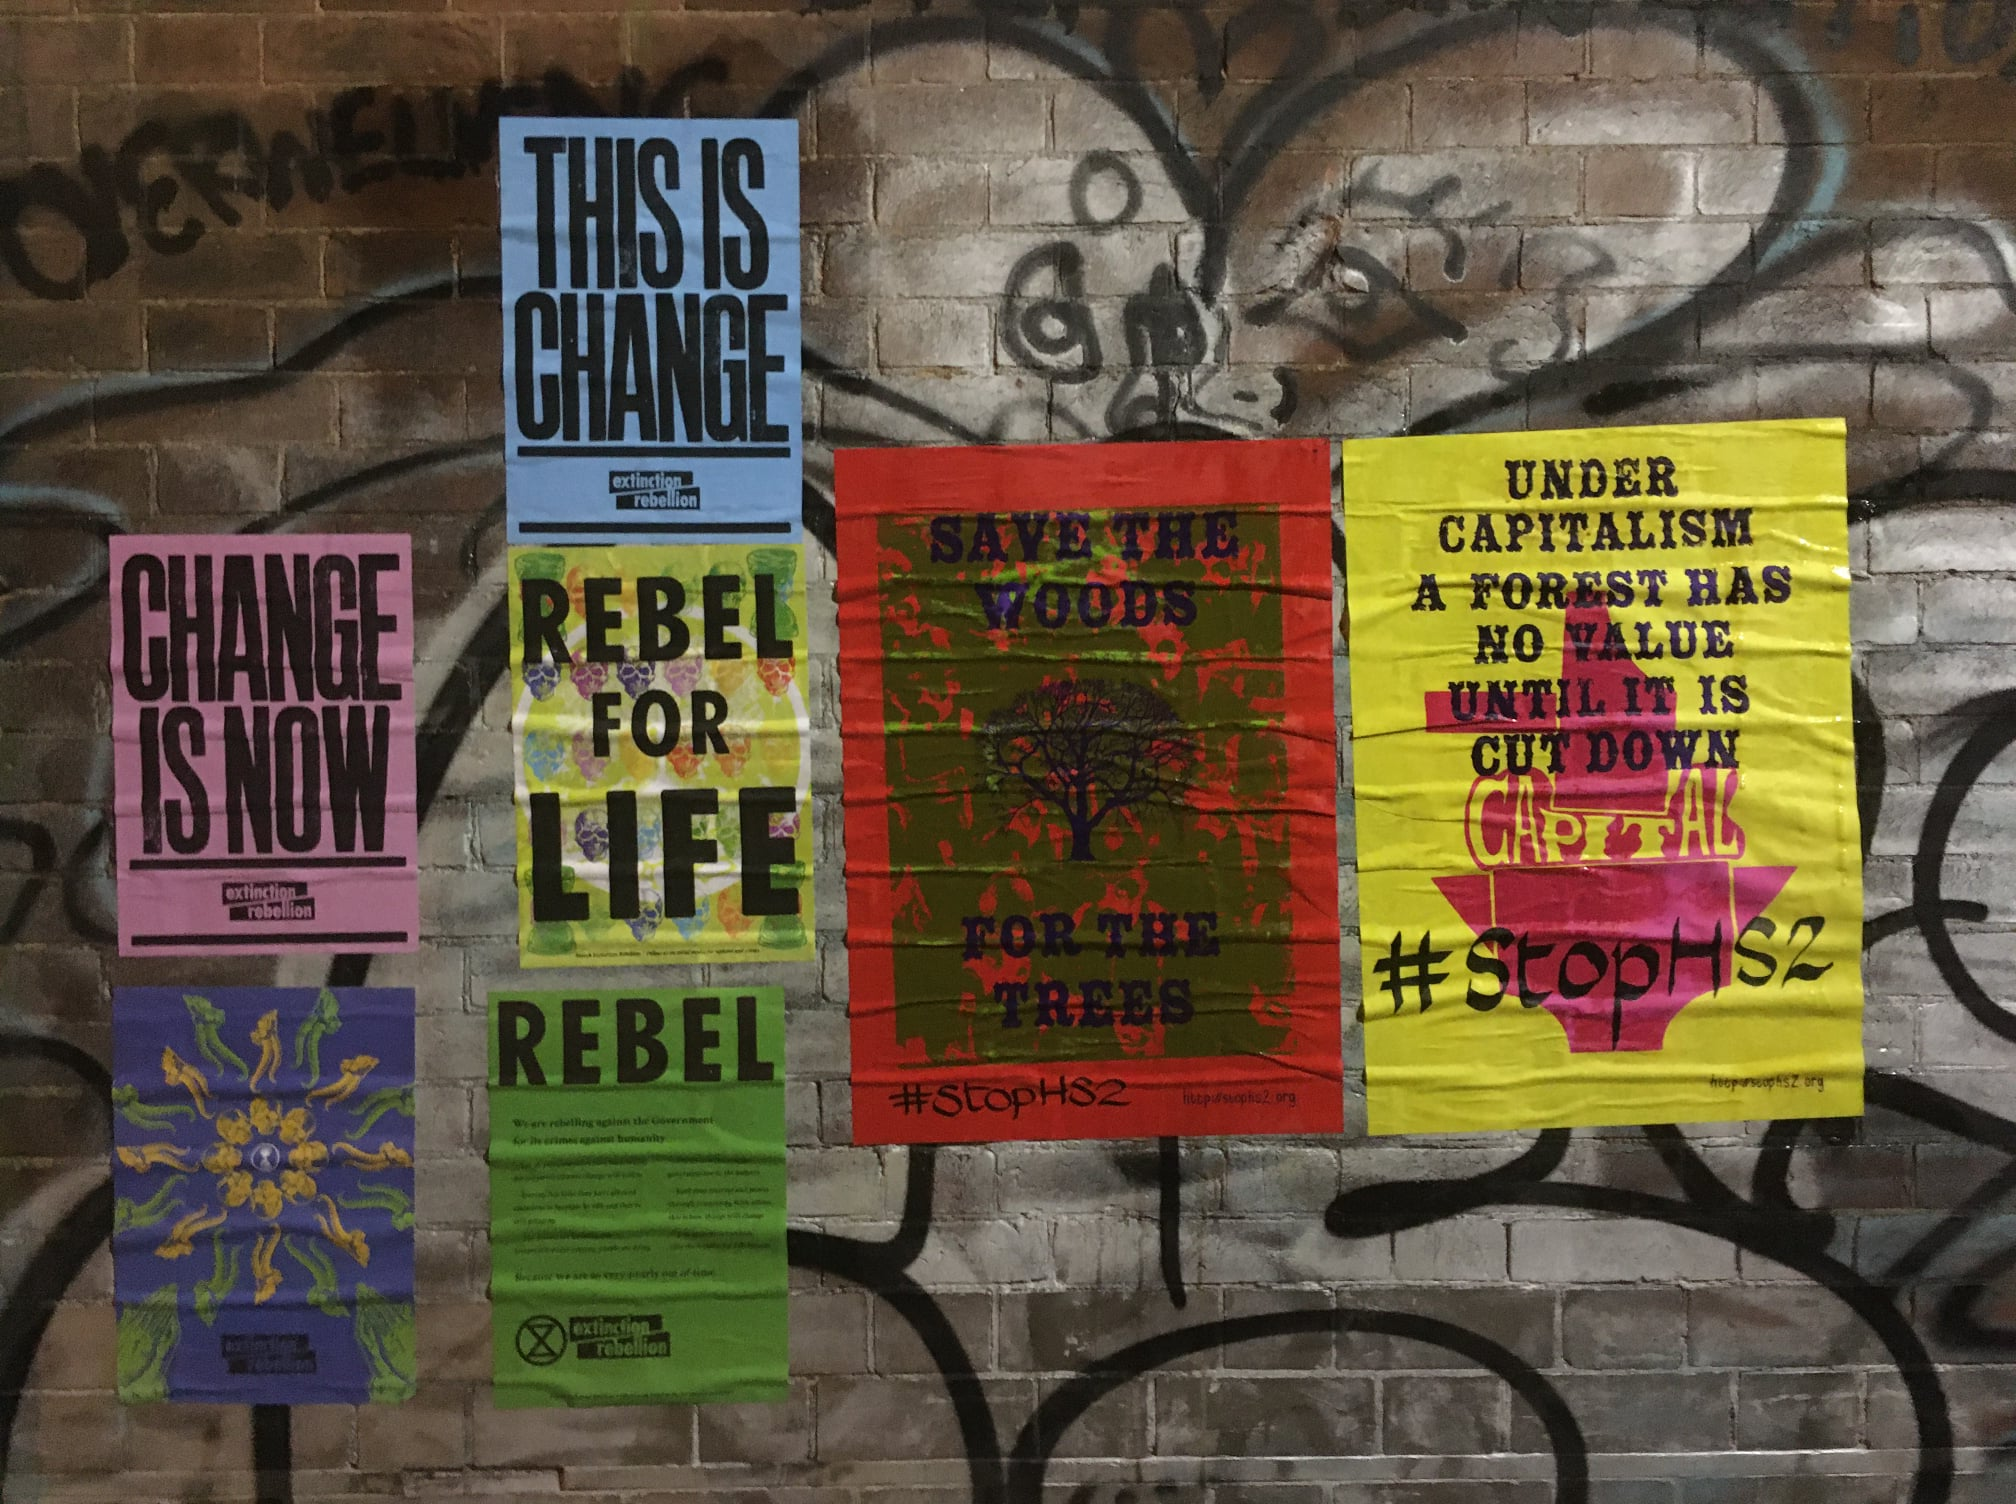 This May Day weekend marks the beginning of a new wave of protest